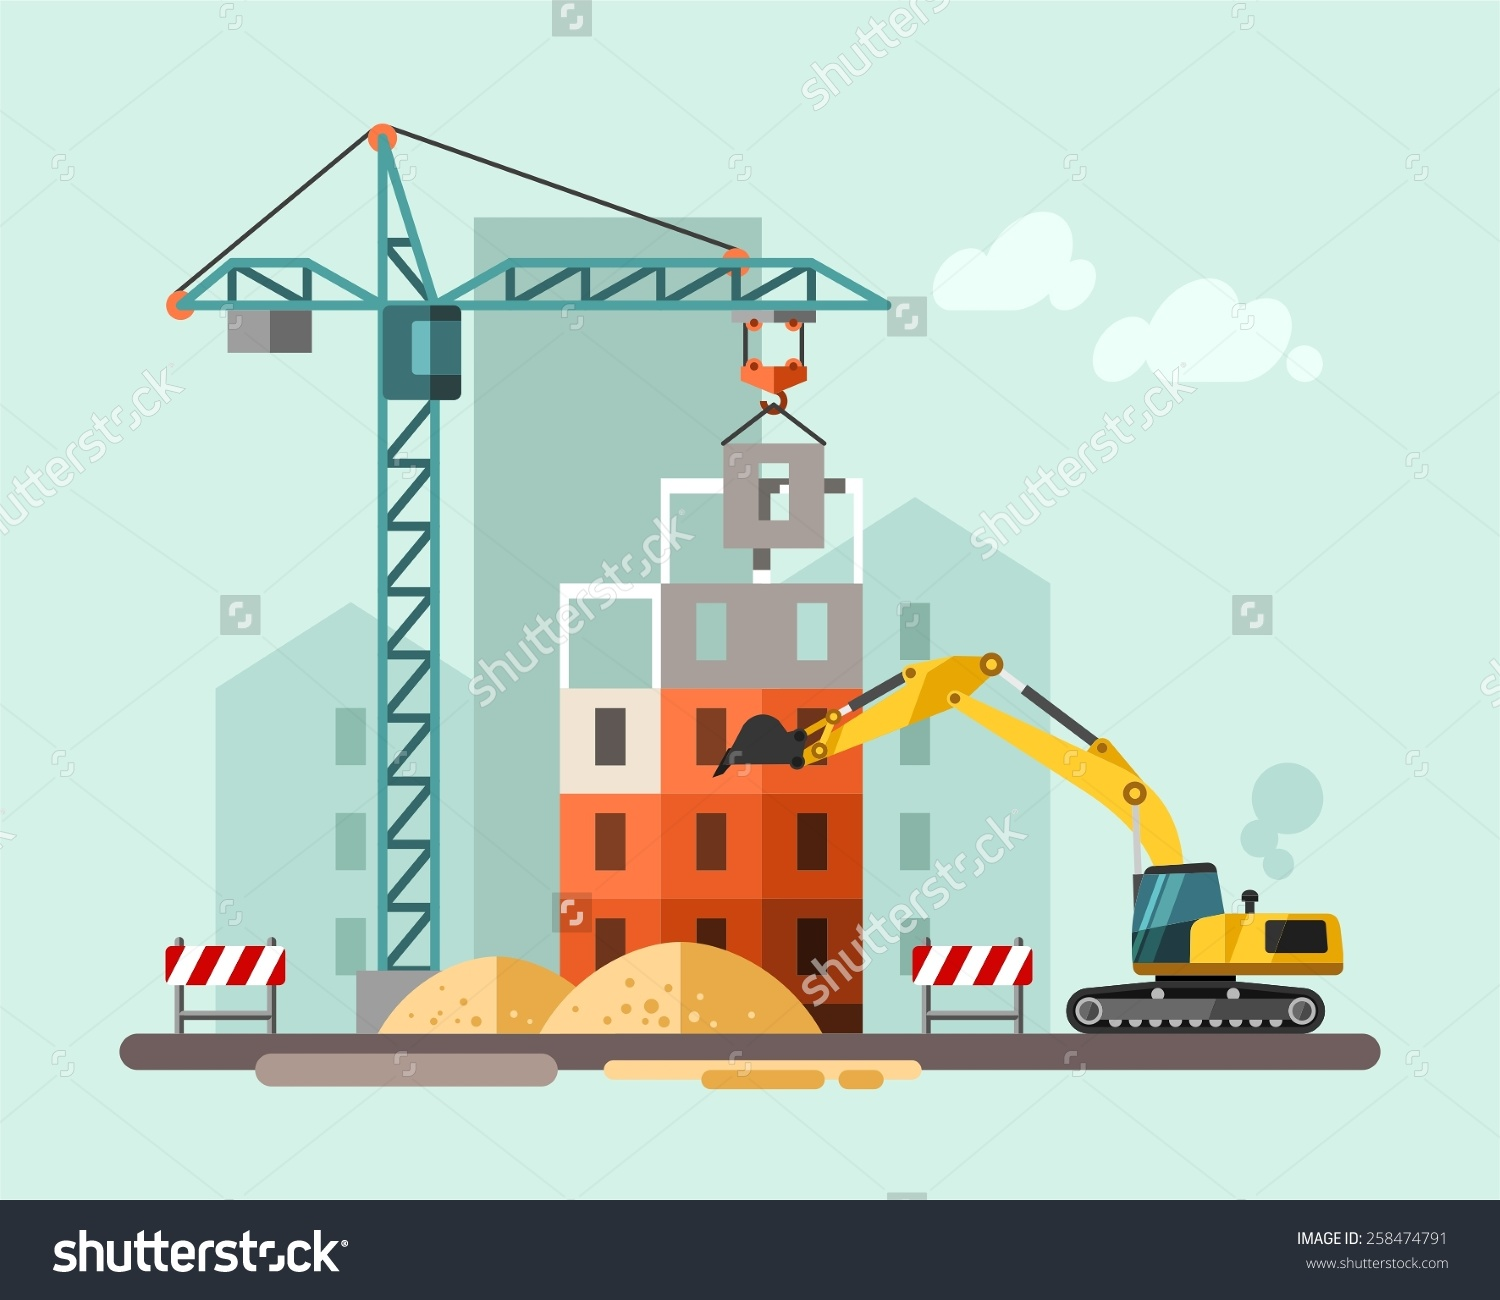 Building site clipart transparent Building site clipart - ClipartFest transparent